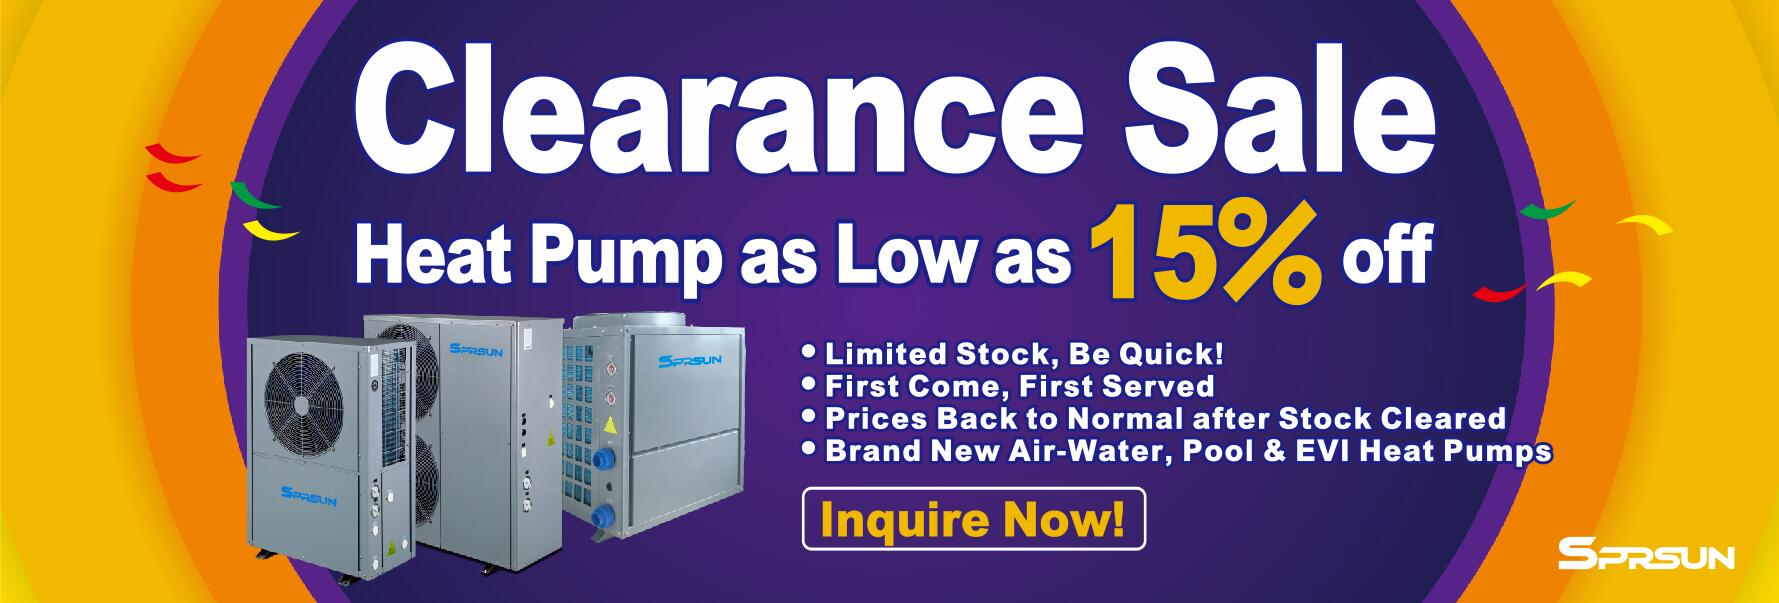 SPRSUN Heat Pump Clearance Sale